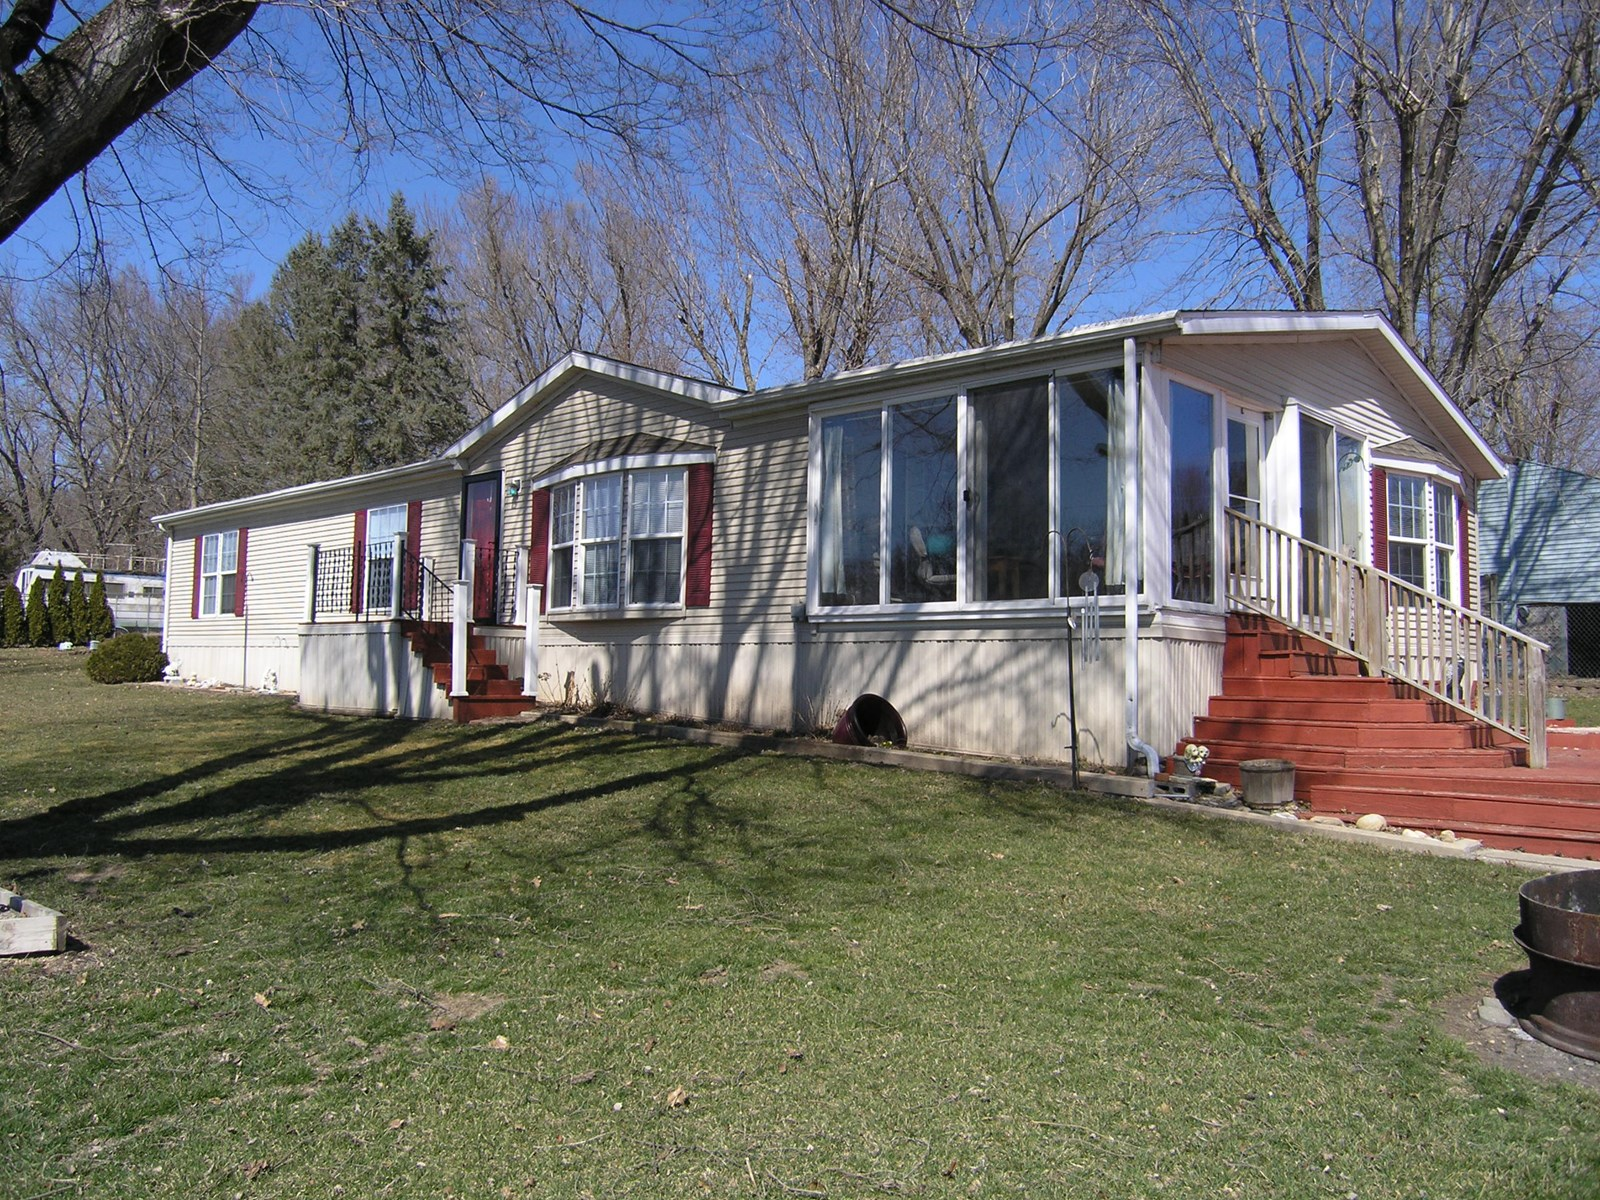 Ranch Style House Close to Mississippi River, Jo Daviess Co